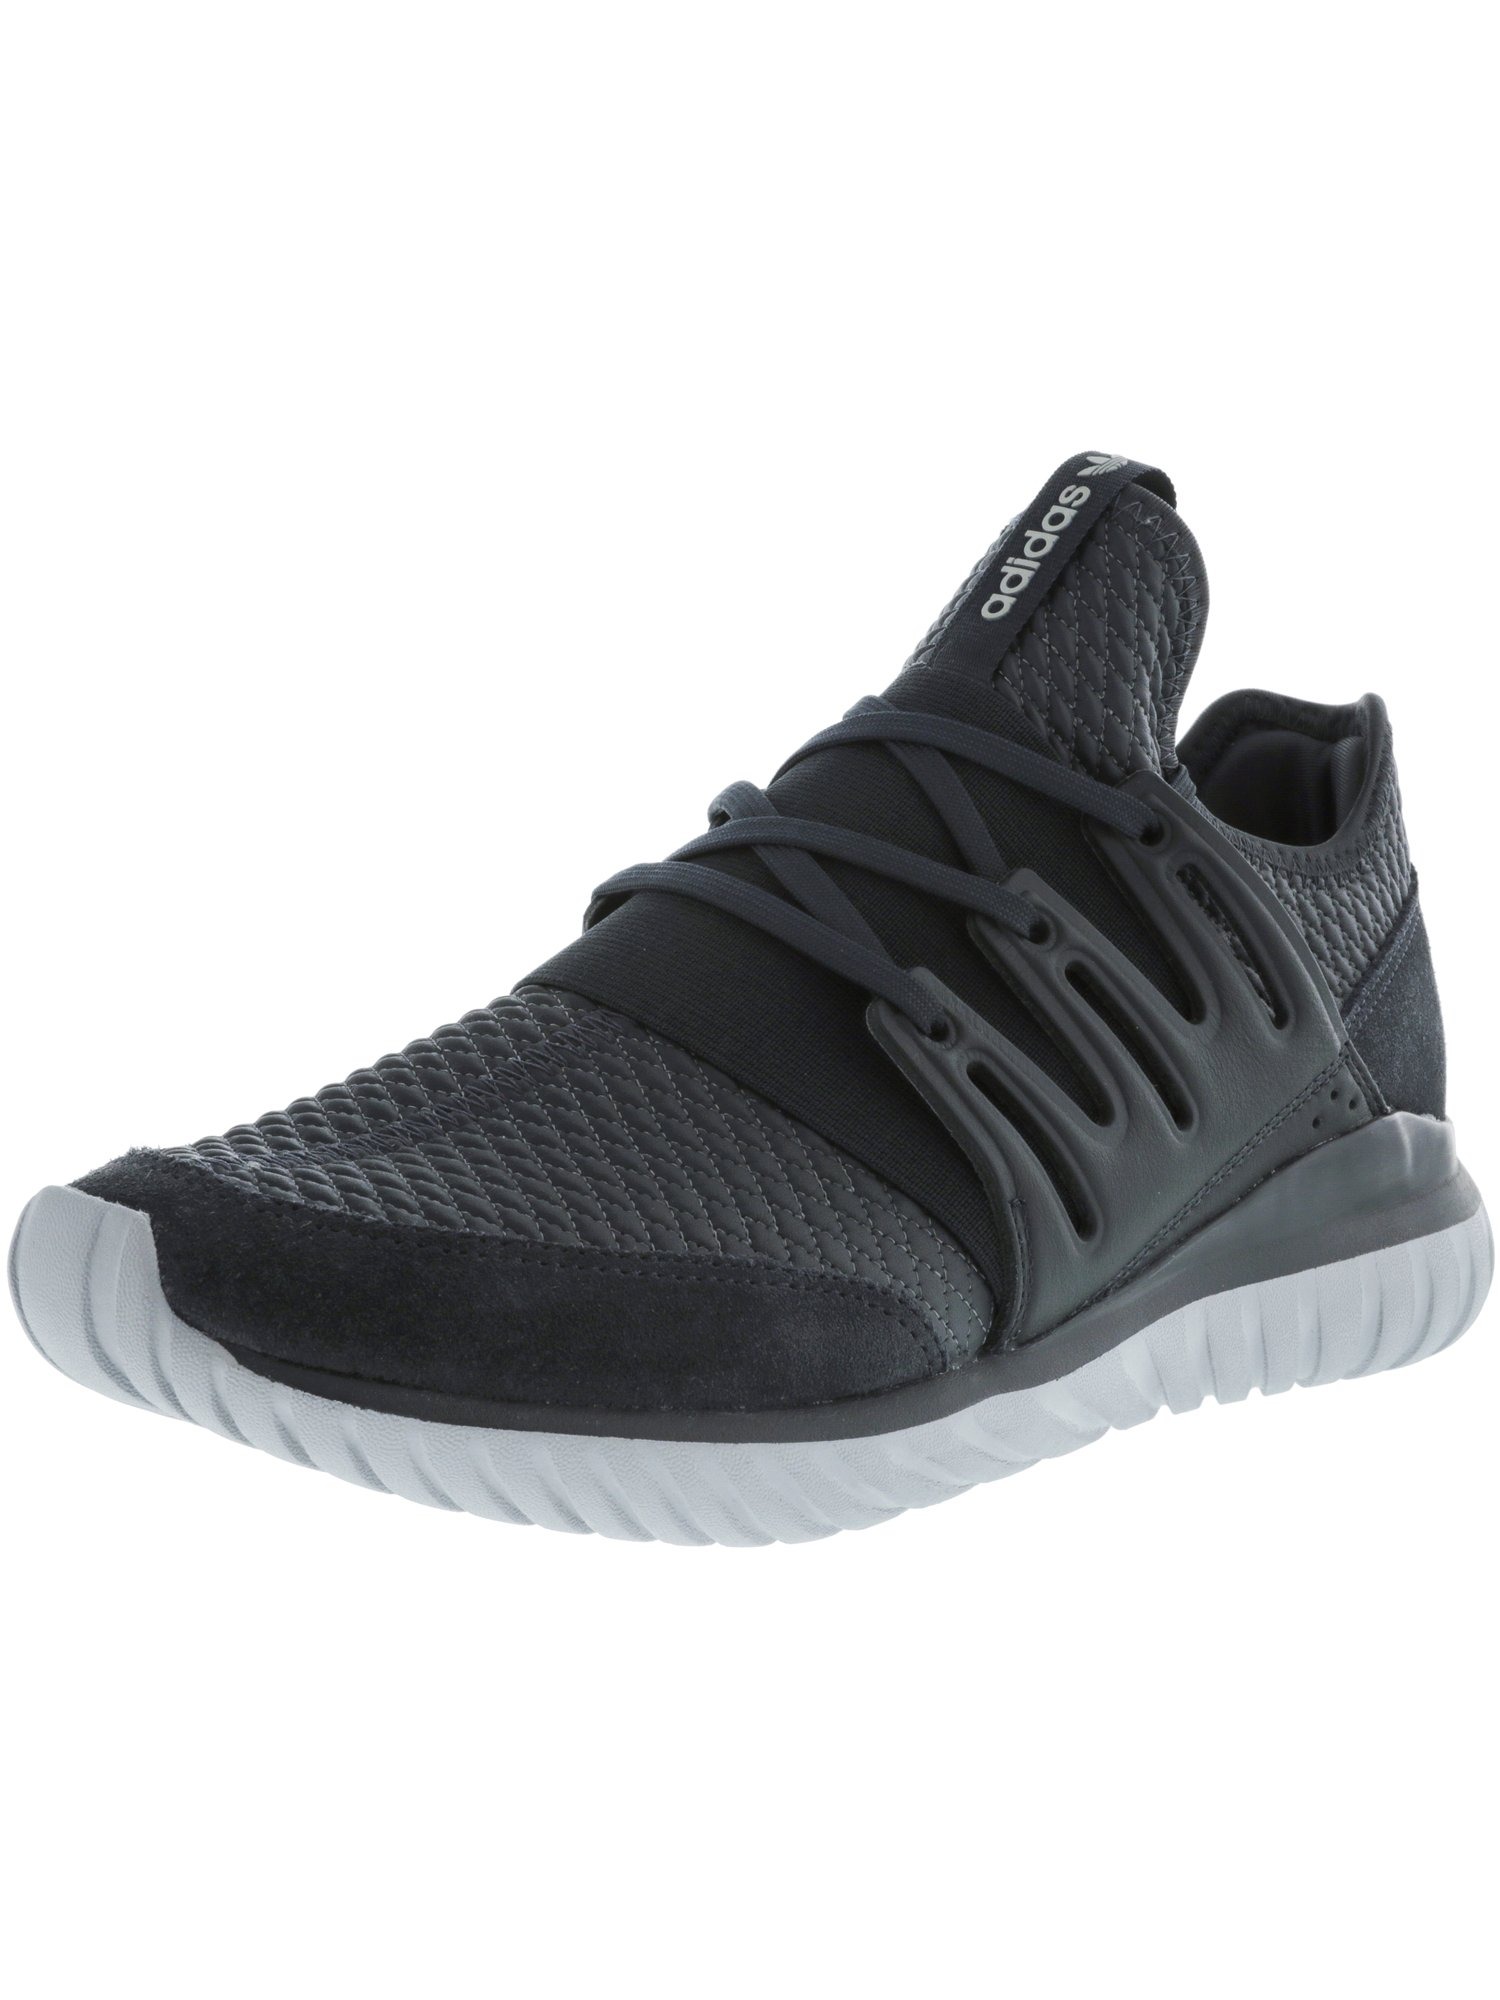 best sneakers b4f66 800d3 Adidas Men's Tubular Radial Fashion Sneaker